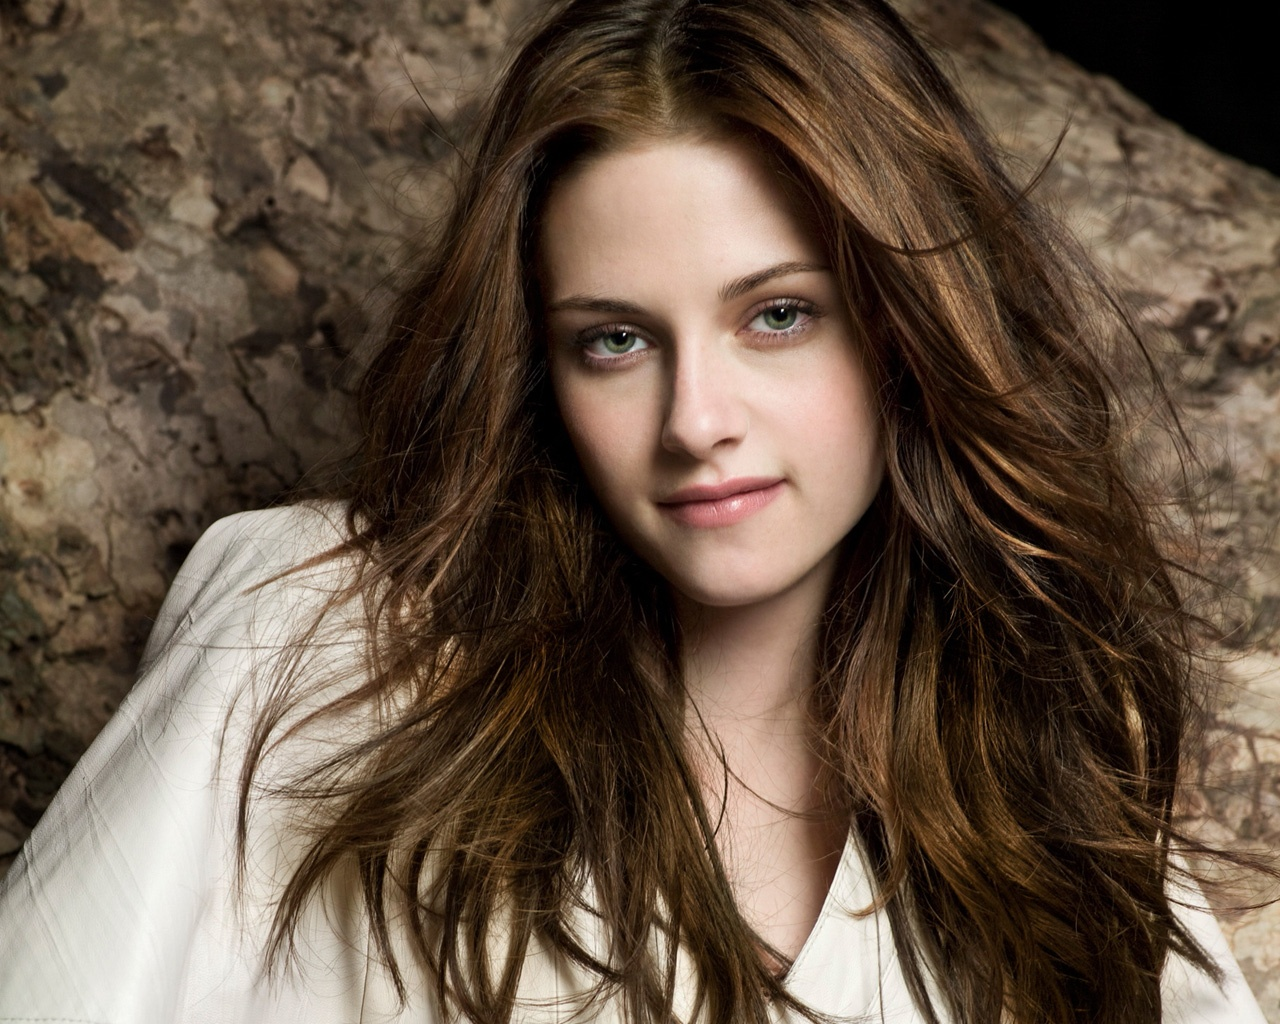 Wallpaper photo girl wallpapers for free download about 3253 kristen stewart twilight girl altavistaventures Images